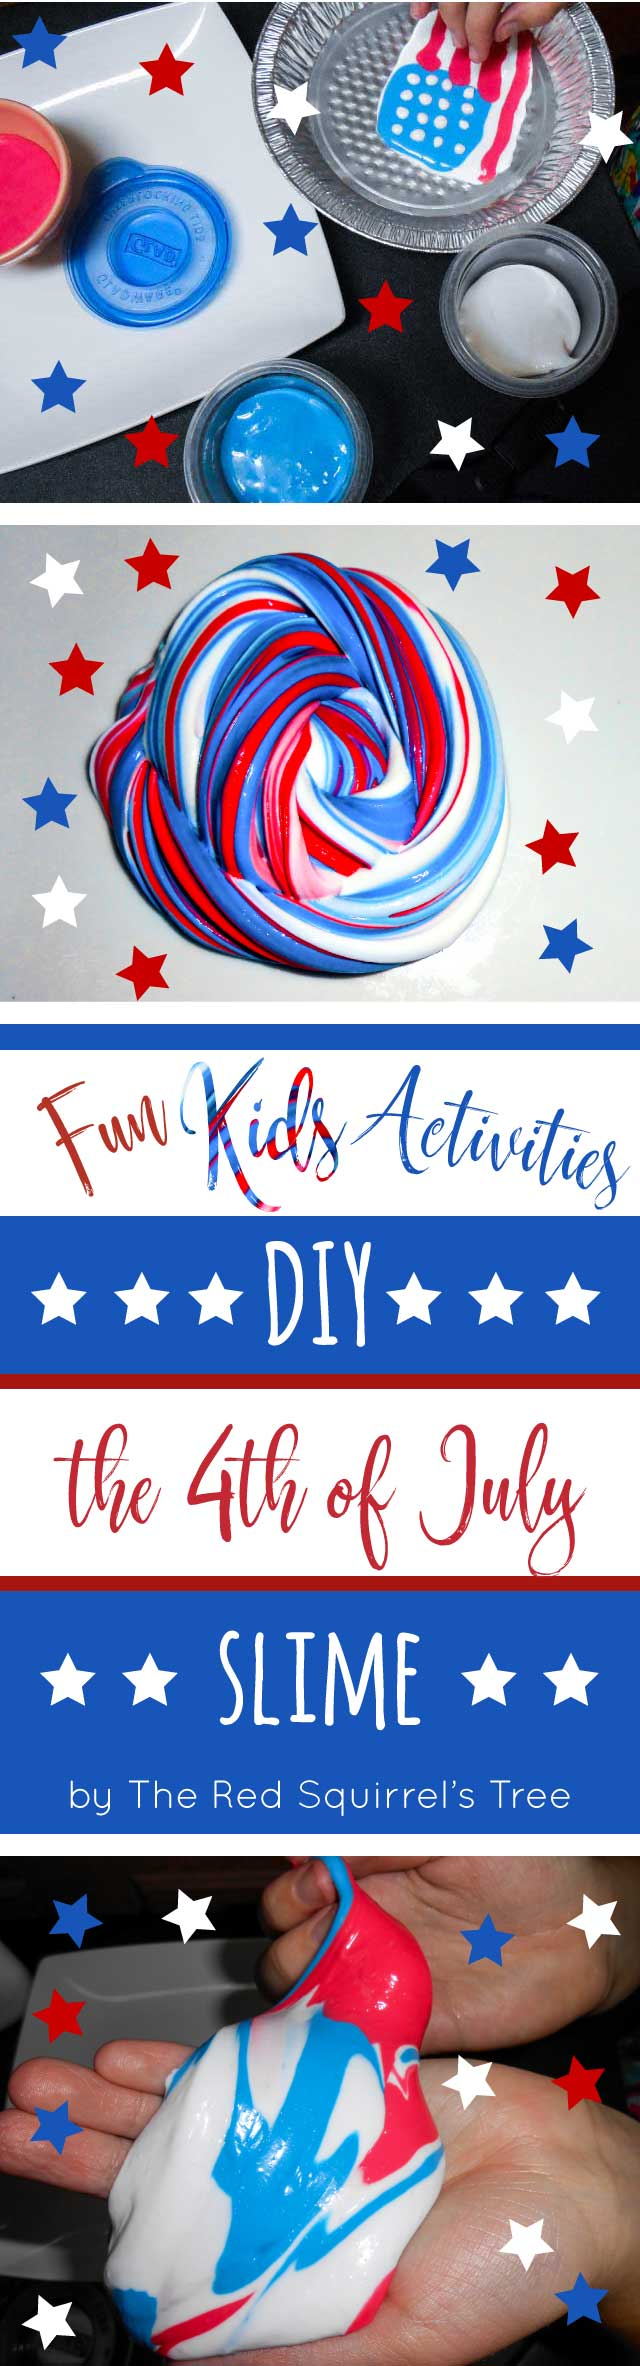 Slime DIY: quick and easy 4th of July project to bring even more fun to your Independence Day celebration!